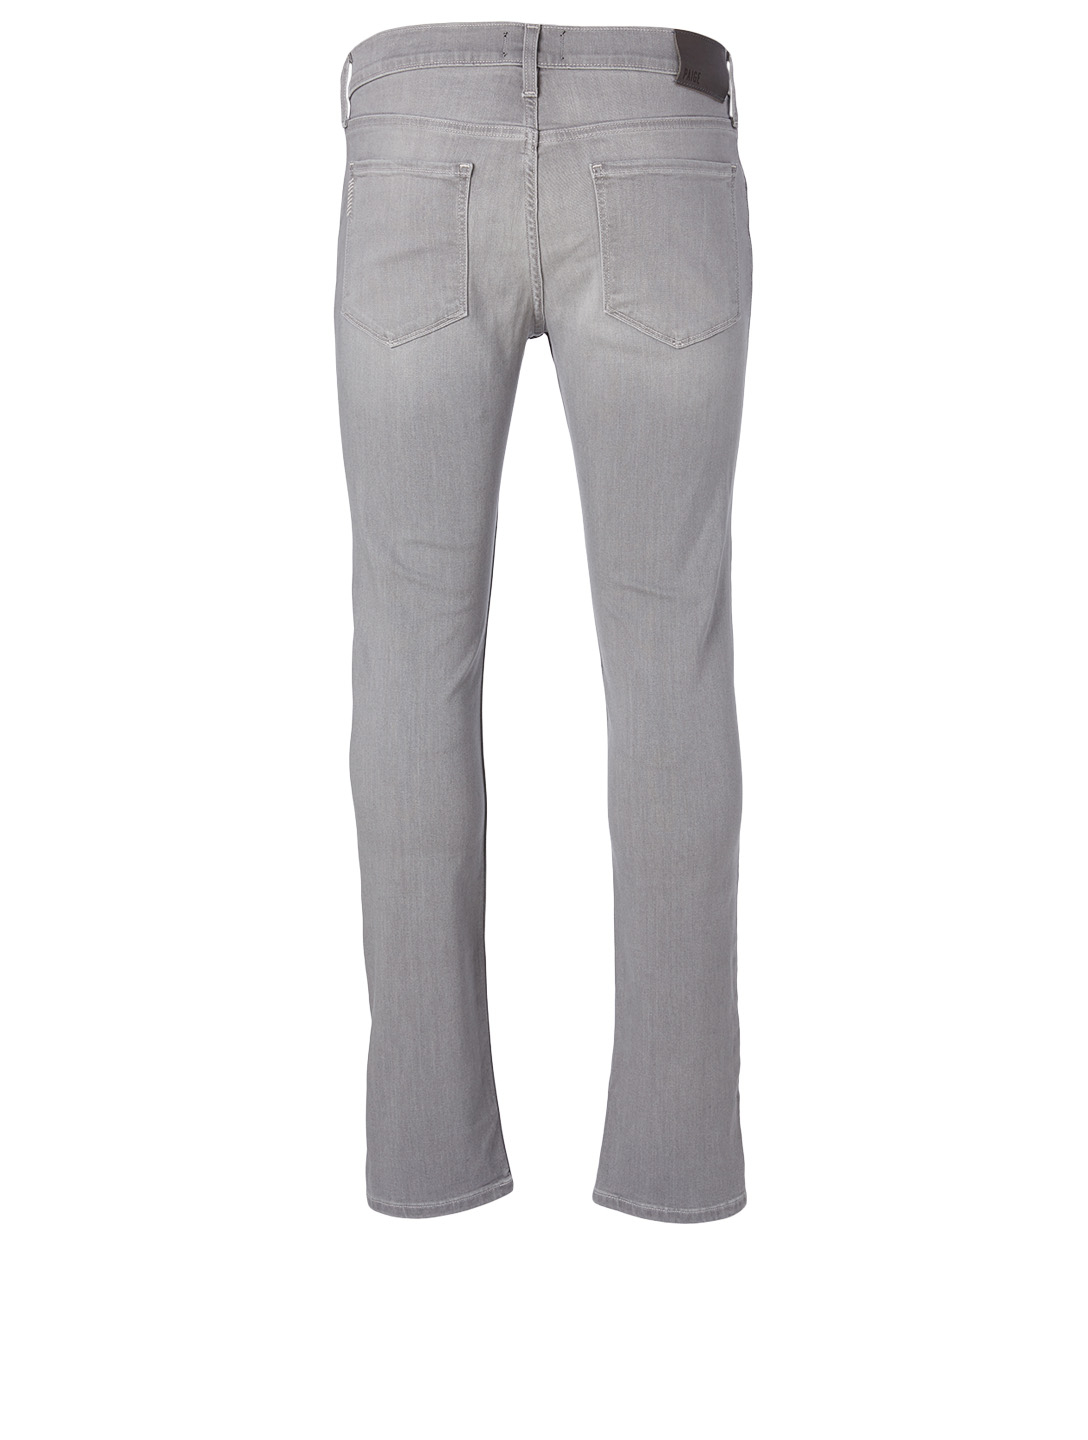 PAIGE Croft Skinny Jeans Men's Grey